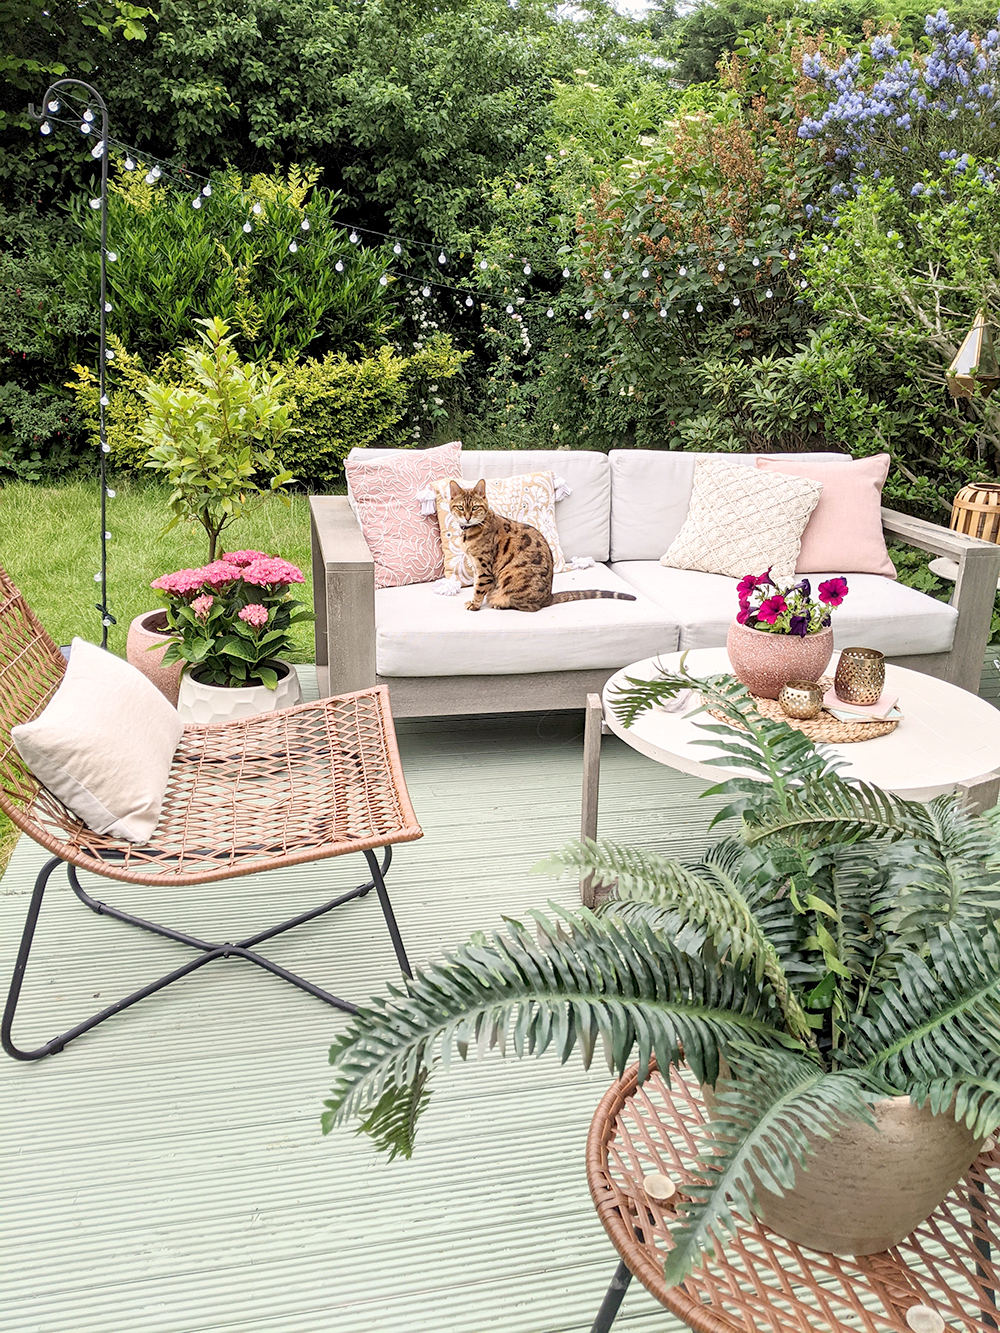 bengal cat sat on outdoor sofa on green decking